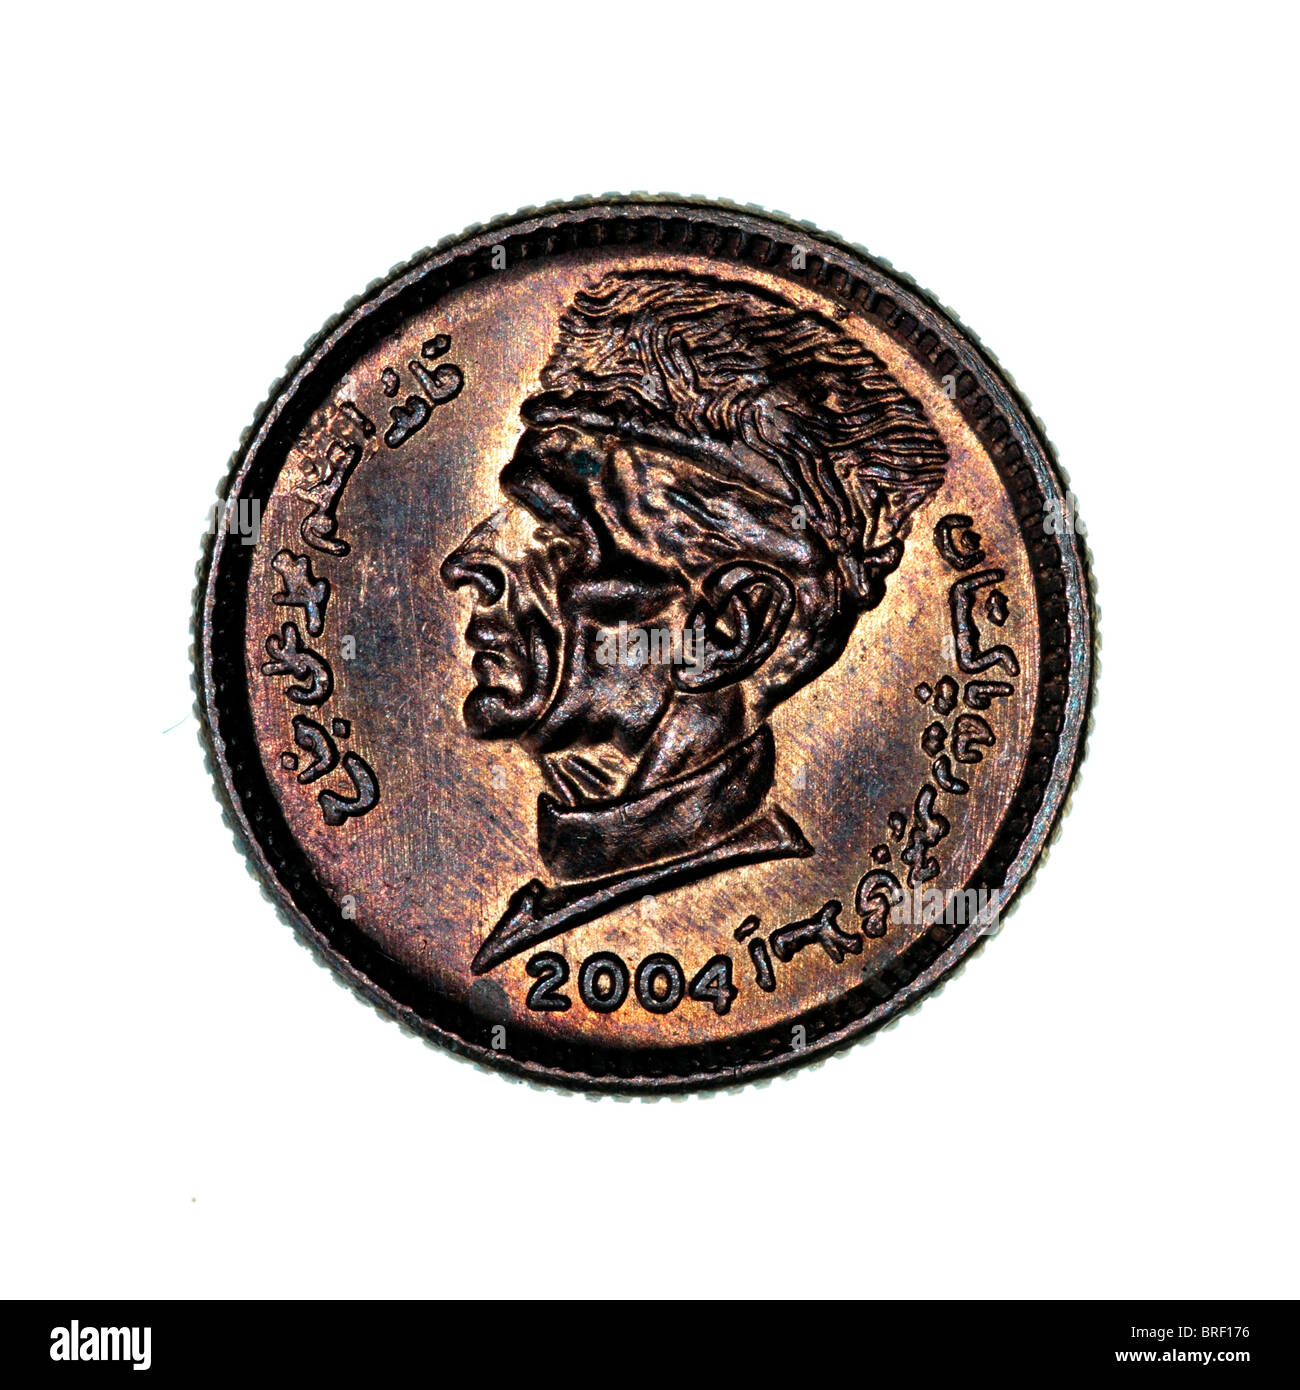 Coin Pakistan - Stock Image